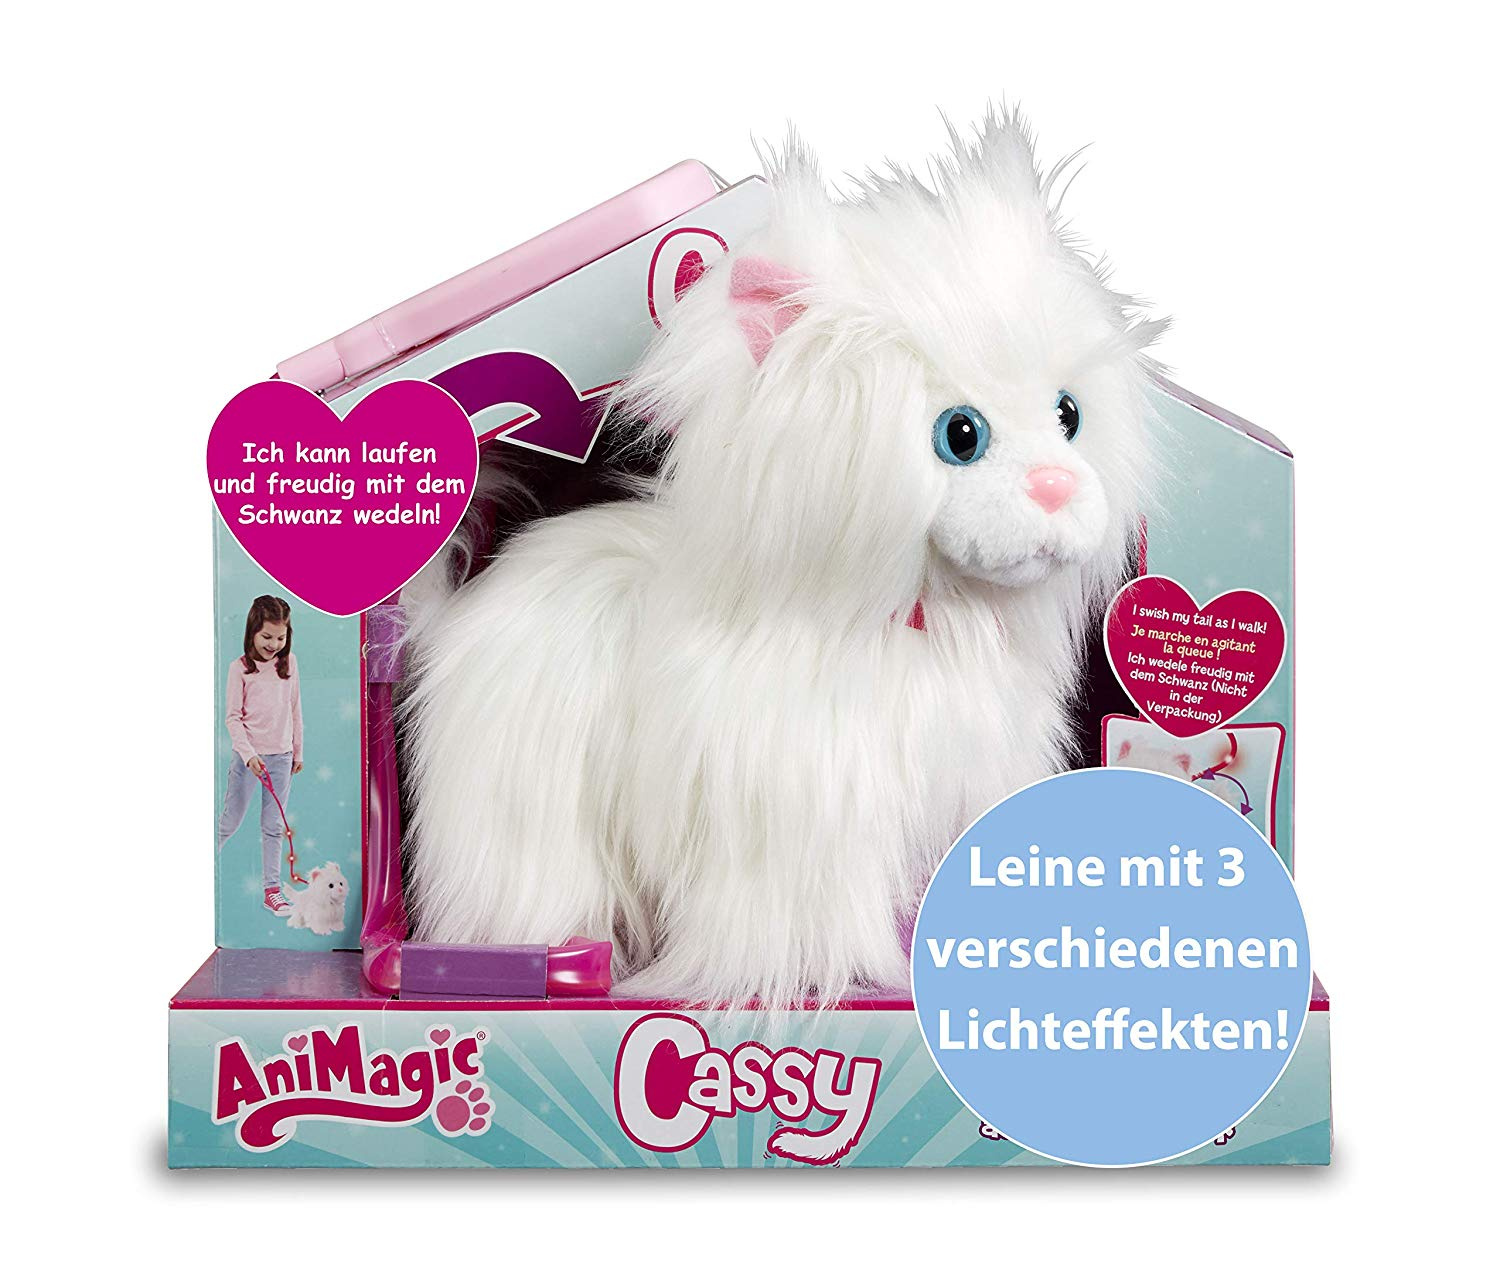 Animagic Pet Cassy Cat Catwalk By Animagic Shop Online For Toys In The United States